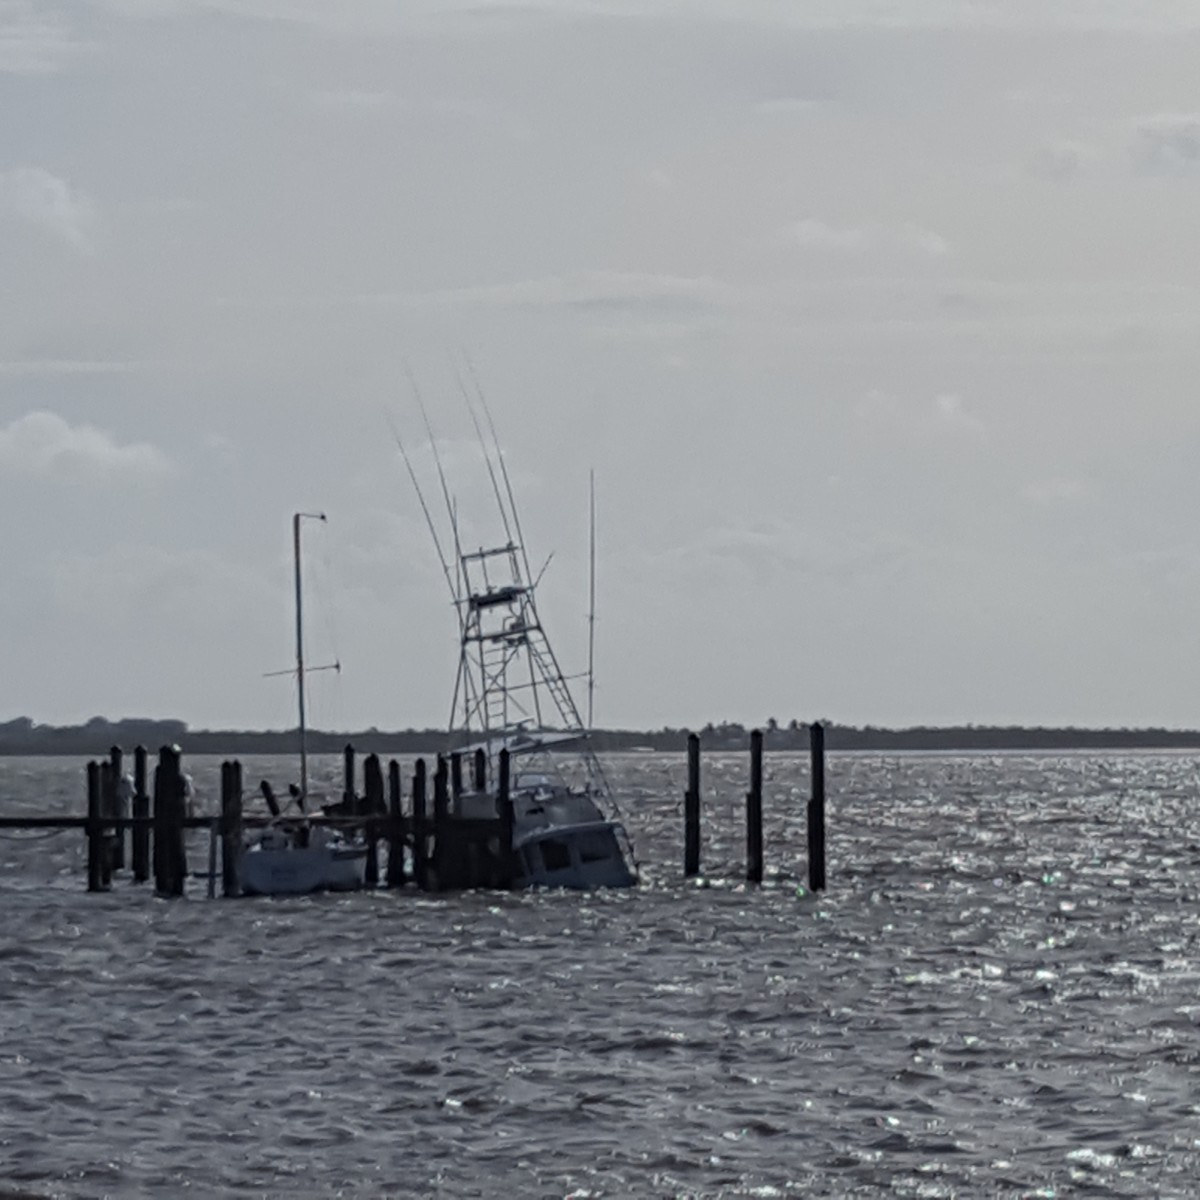 Sea Lion, an iconic 1963 Whiticar, is shown sunk at the dock in Jensen Beach, Fla. Winds were about 80 mph on Sunday.